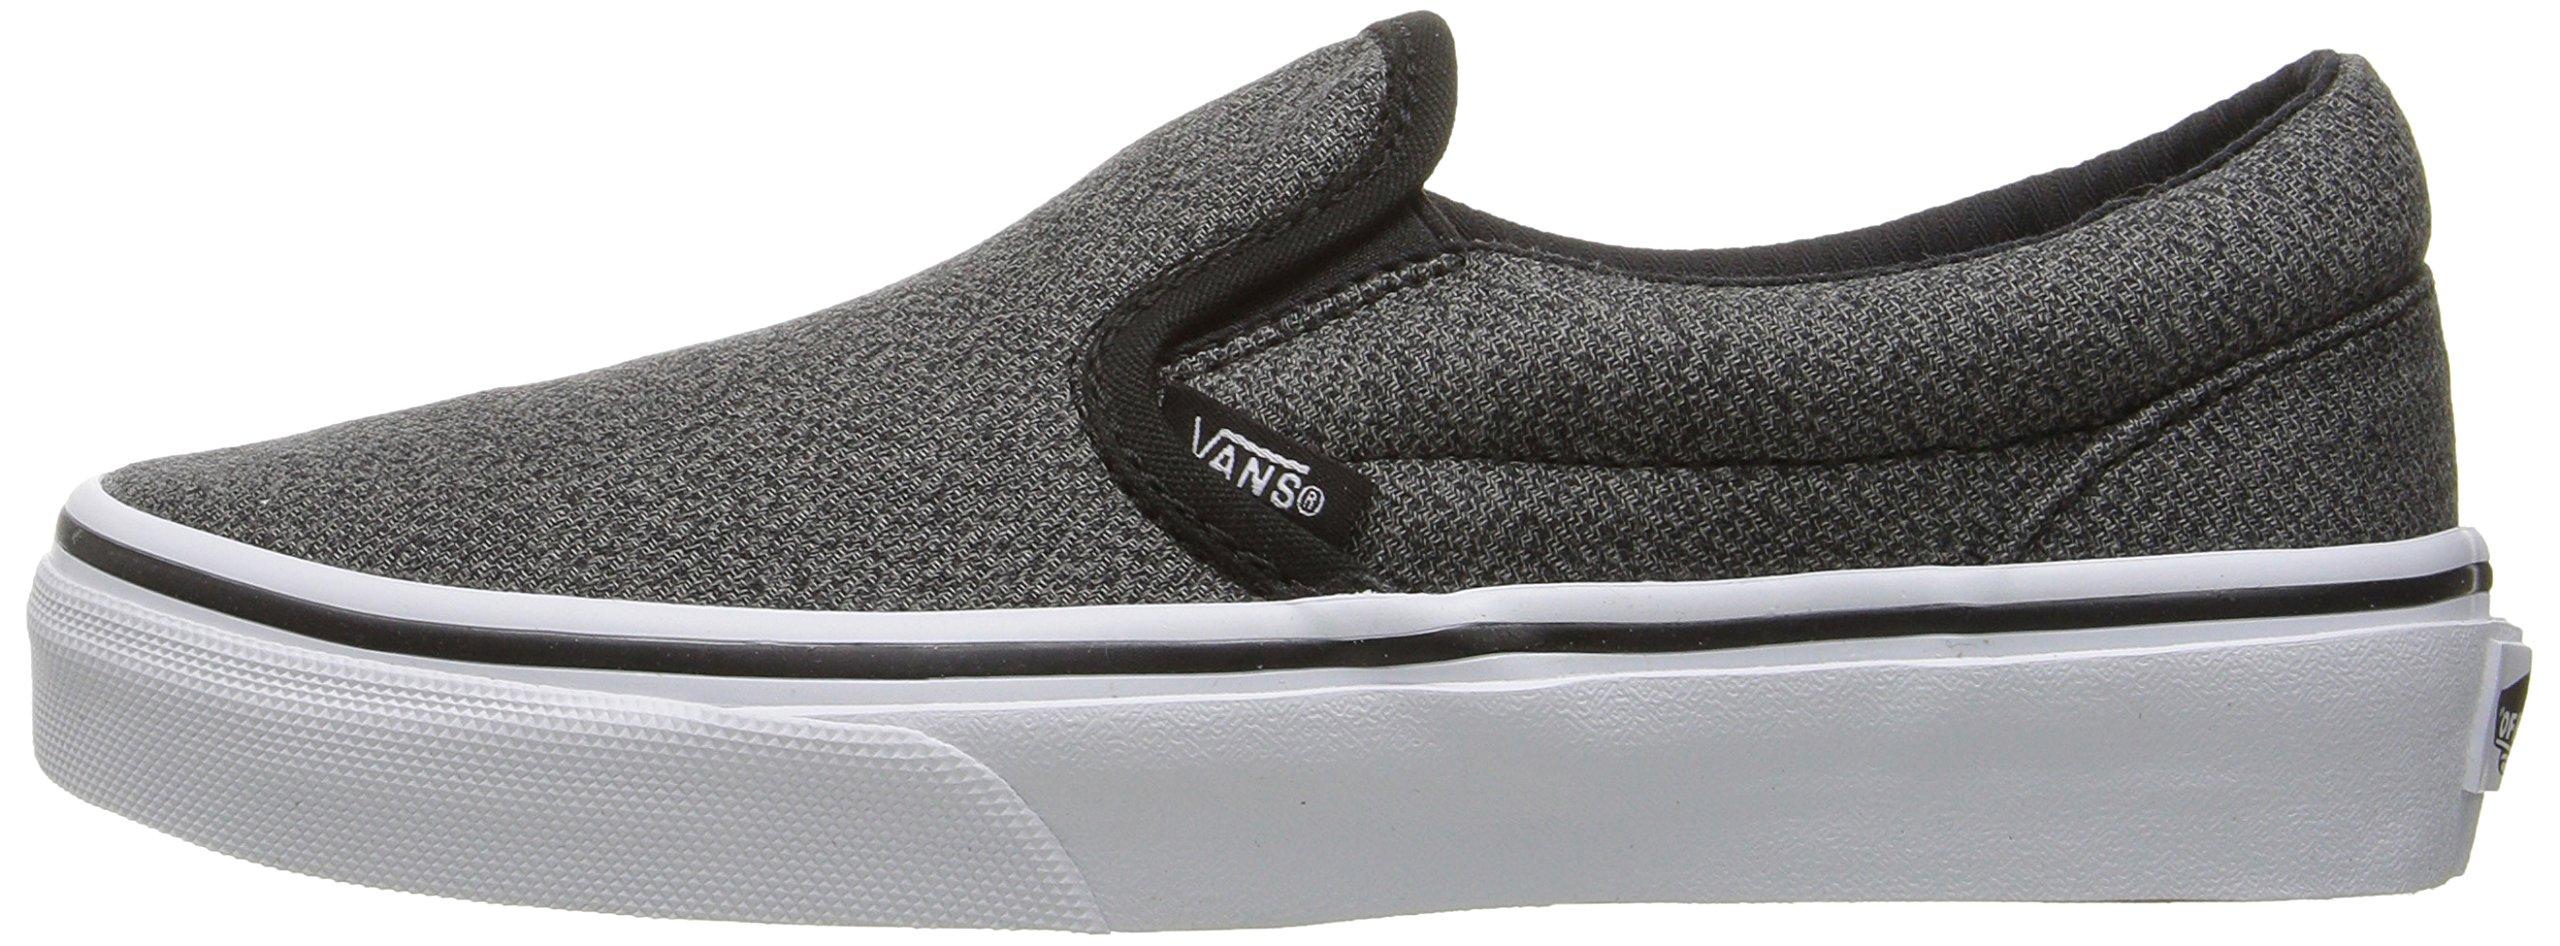 928065d0386ca Vans Kids' Classic Slip-On Core (Toddler) - MSS-VN000ZBUENR ...